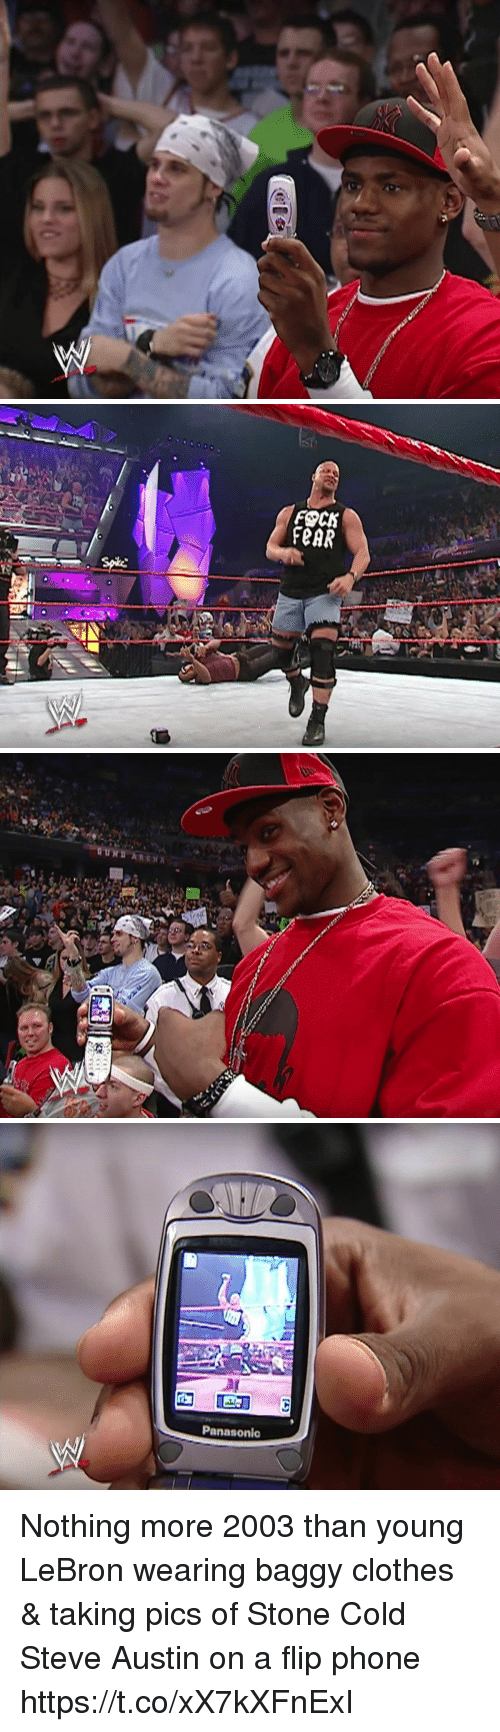 cold-steve-austin: FOCK  FeAR   UND   Panasonic Nothing more 2003 than young LeBron wearing baggy clothes & taking pics of Stone Cold Steve Austin on a flip phone https://t.co/xX7kXFnExI